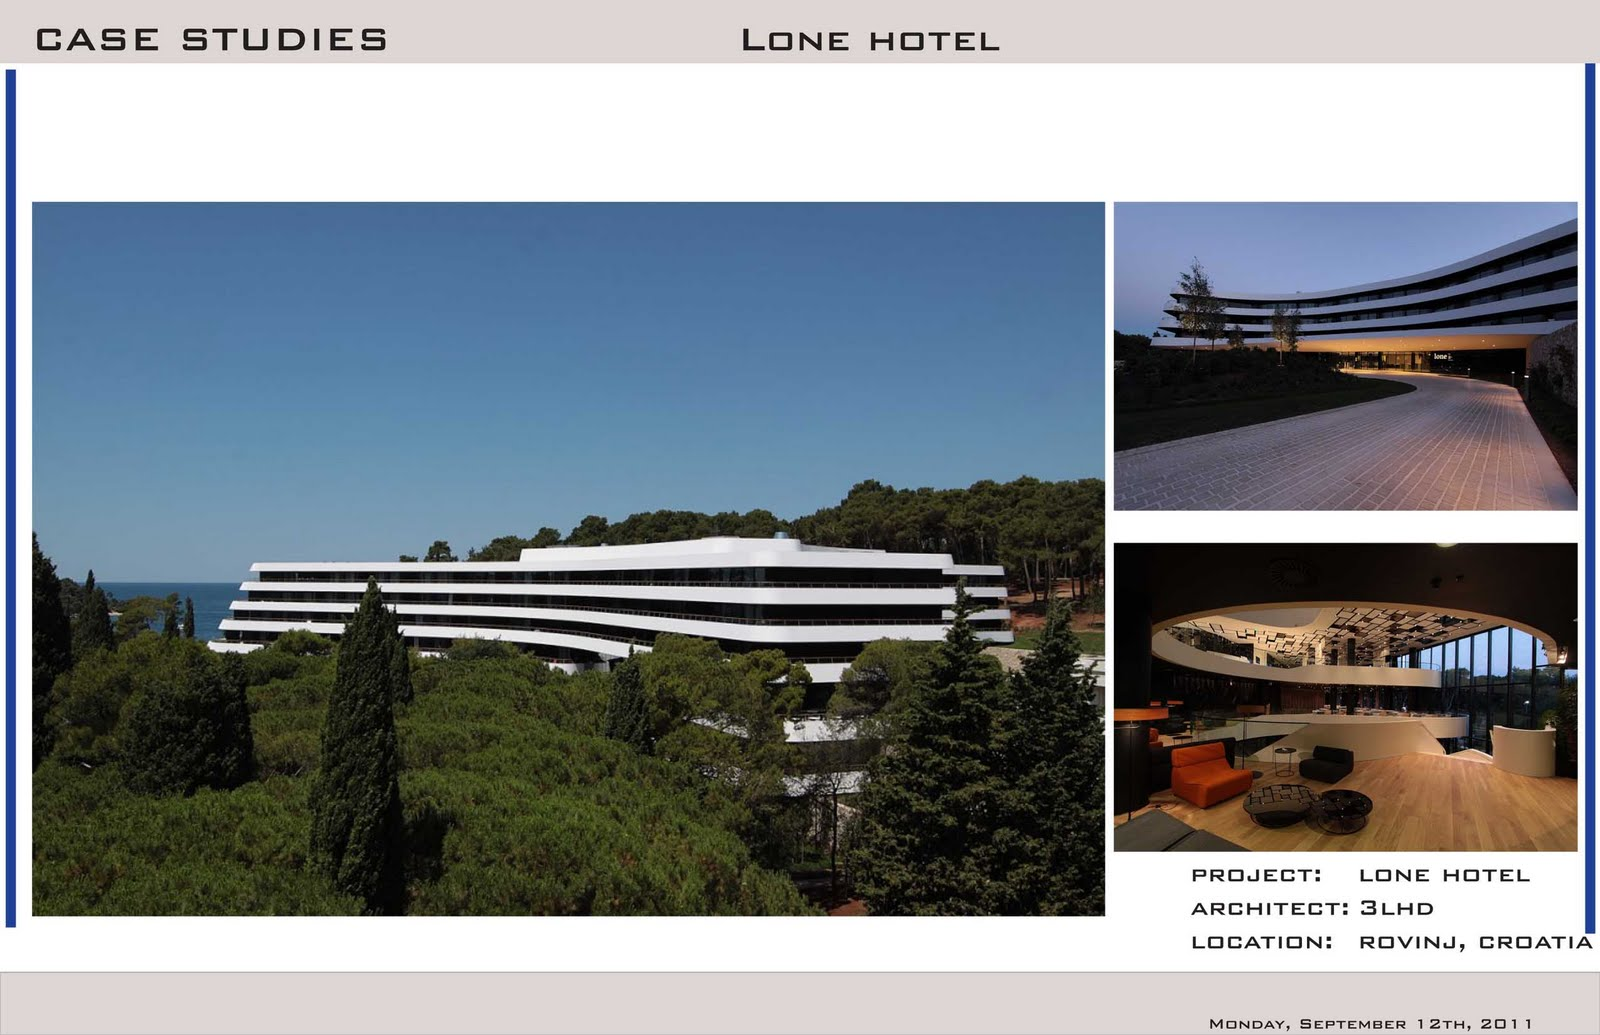 case study on a hotel Learn more about jll hotels and hospitality successes from these global case studies.